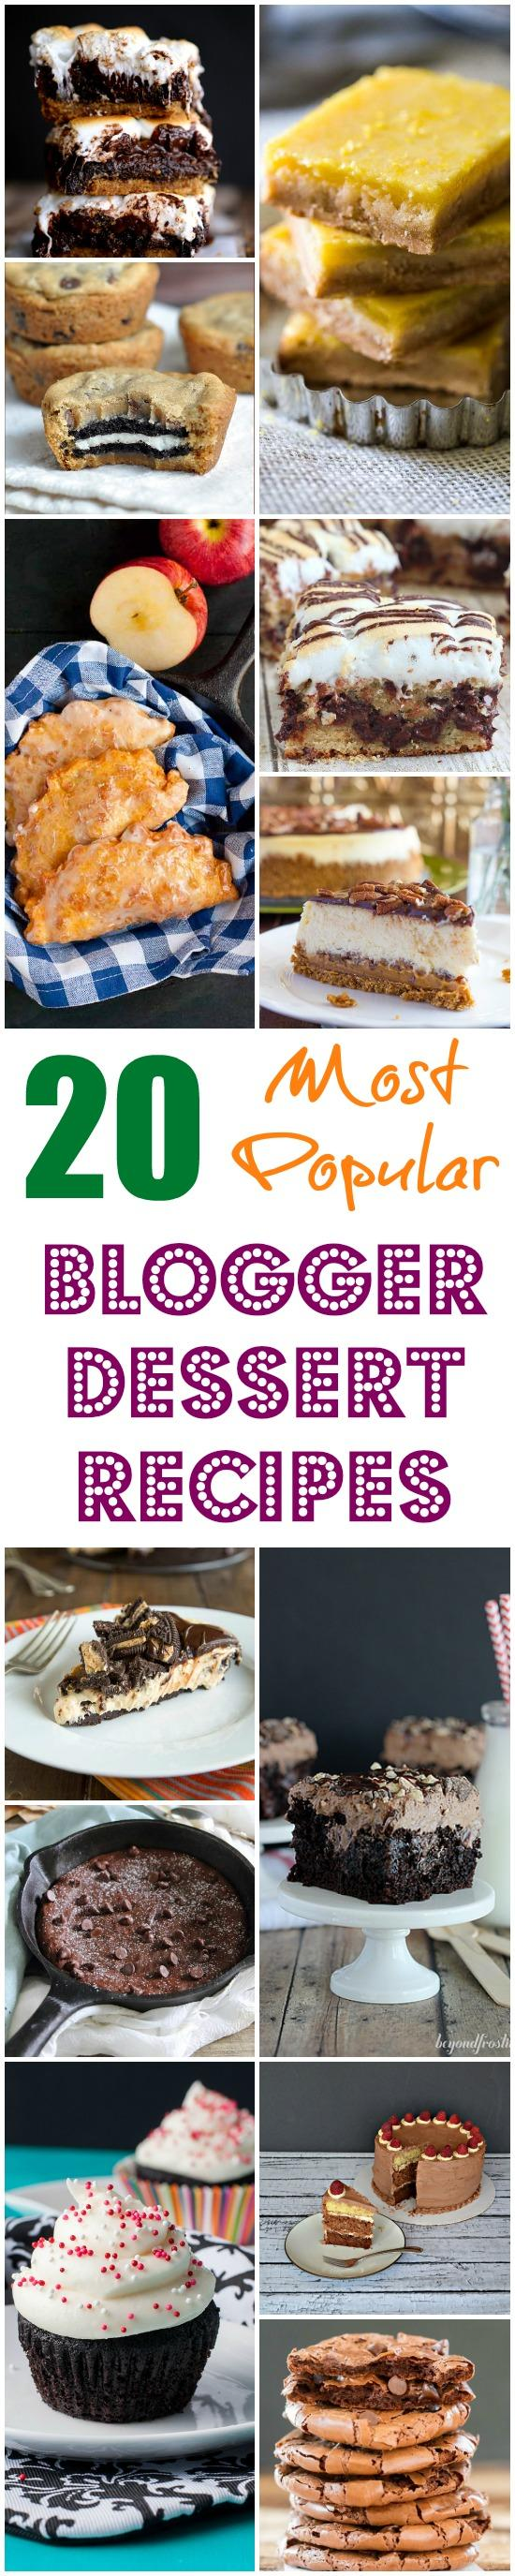 20 of the most popular dessert recipes from food bloggers